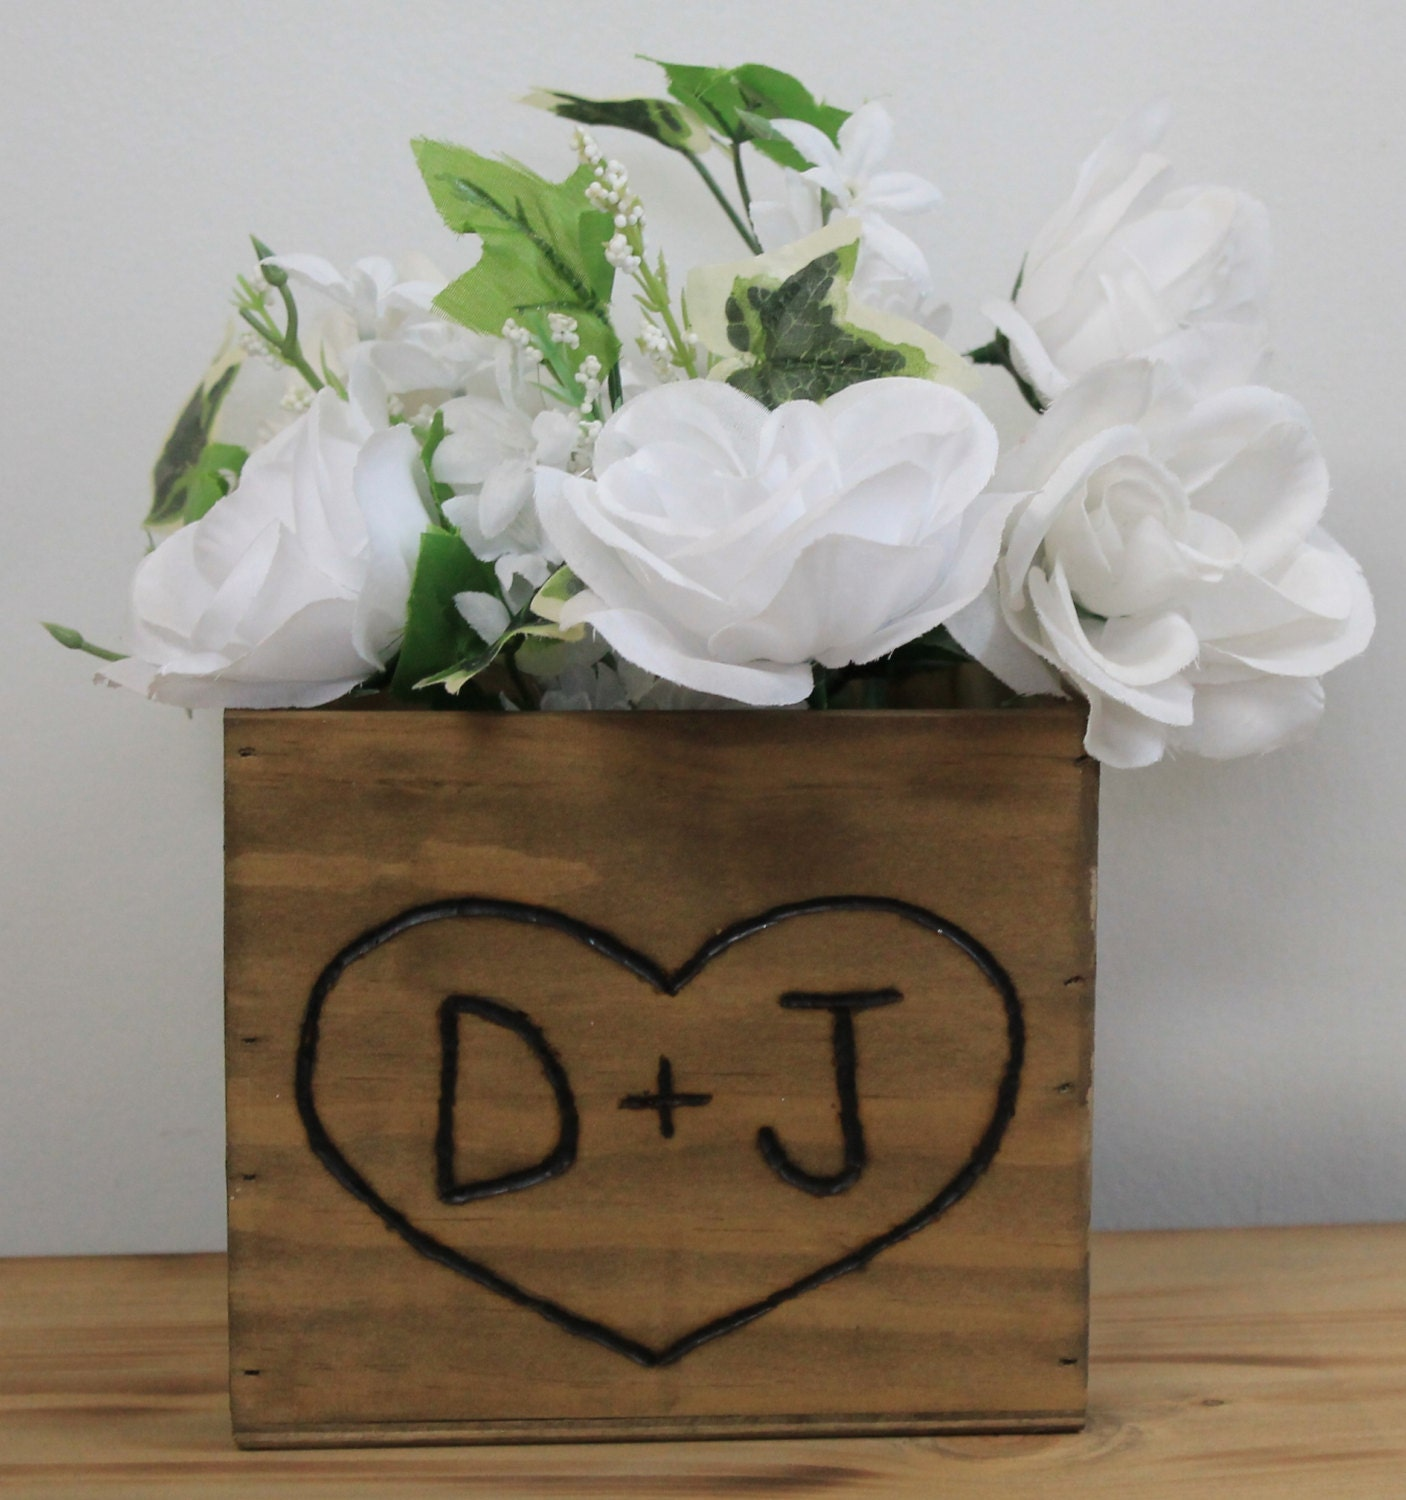 Wedding accessories ideas 12 rustic wedding wooden country barnwood box planter centerpiece flowers personalized initials junglespirit Images